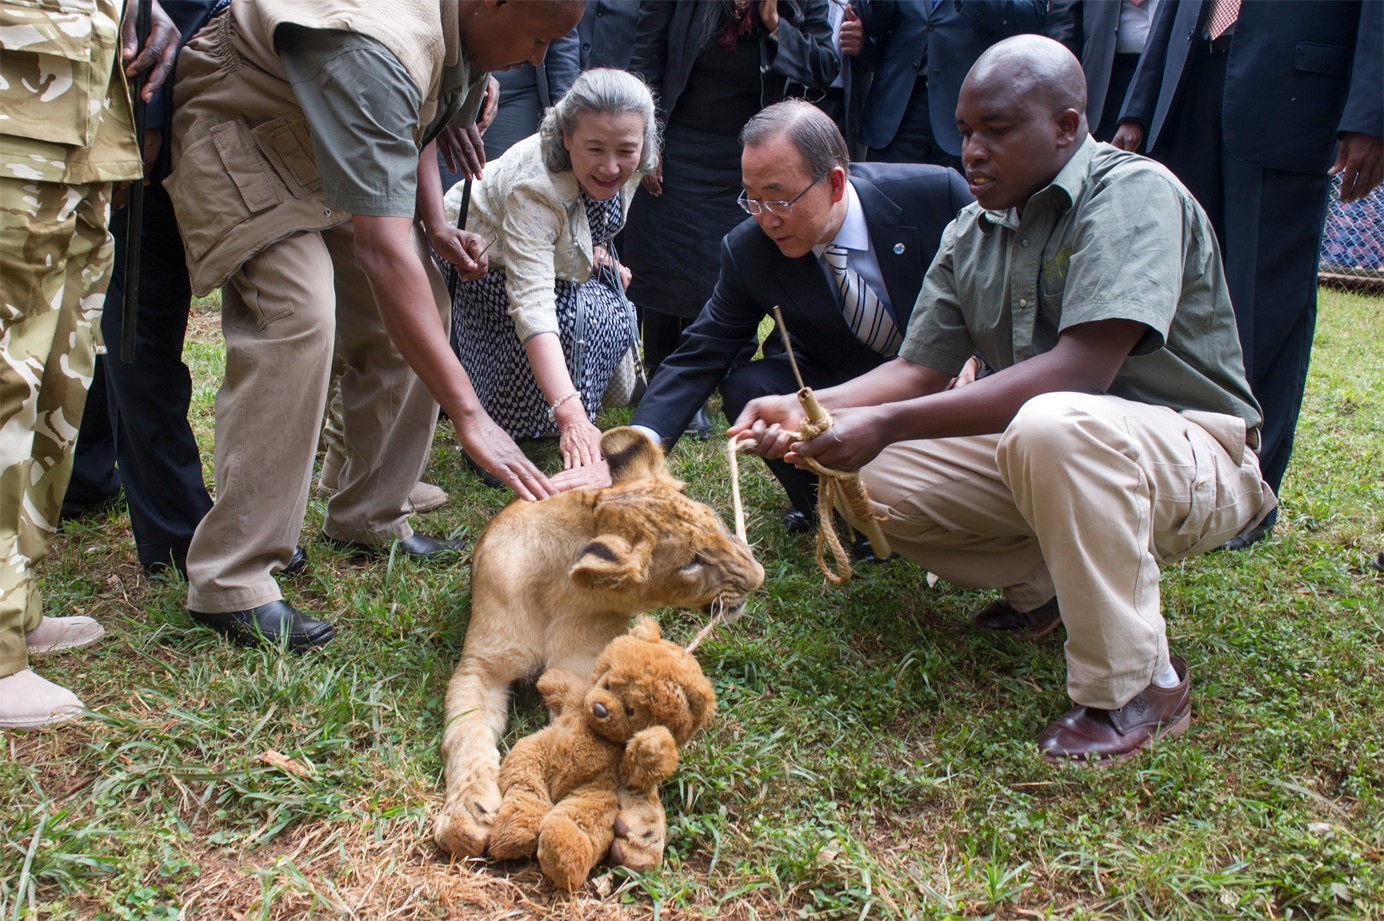 "Secretary-General Ban Ki-moon (centre right) and his wife, Yoo Soon-taek (centre left) visited Nairobi National Park and adopted a lion cub as a sign of support for efforts against the trafficking of animals around the world. He said he adopted the six-month old cub, whose Kiswahili name Tumaini means ""hope"", to show solidarity for the preservation efforts of the Kenyan people, and as a token of his concern for the Kenya Wildlife Service and park rangers."